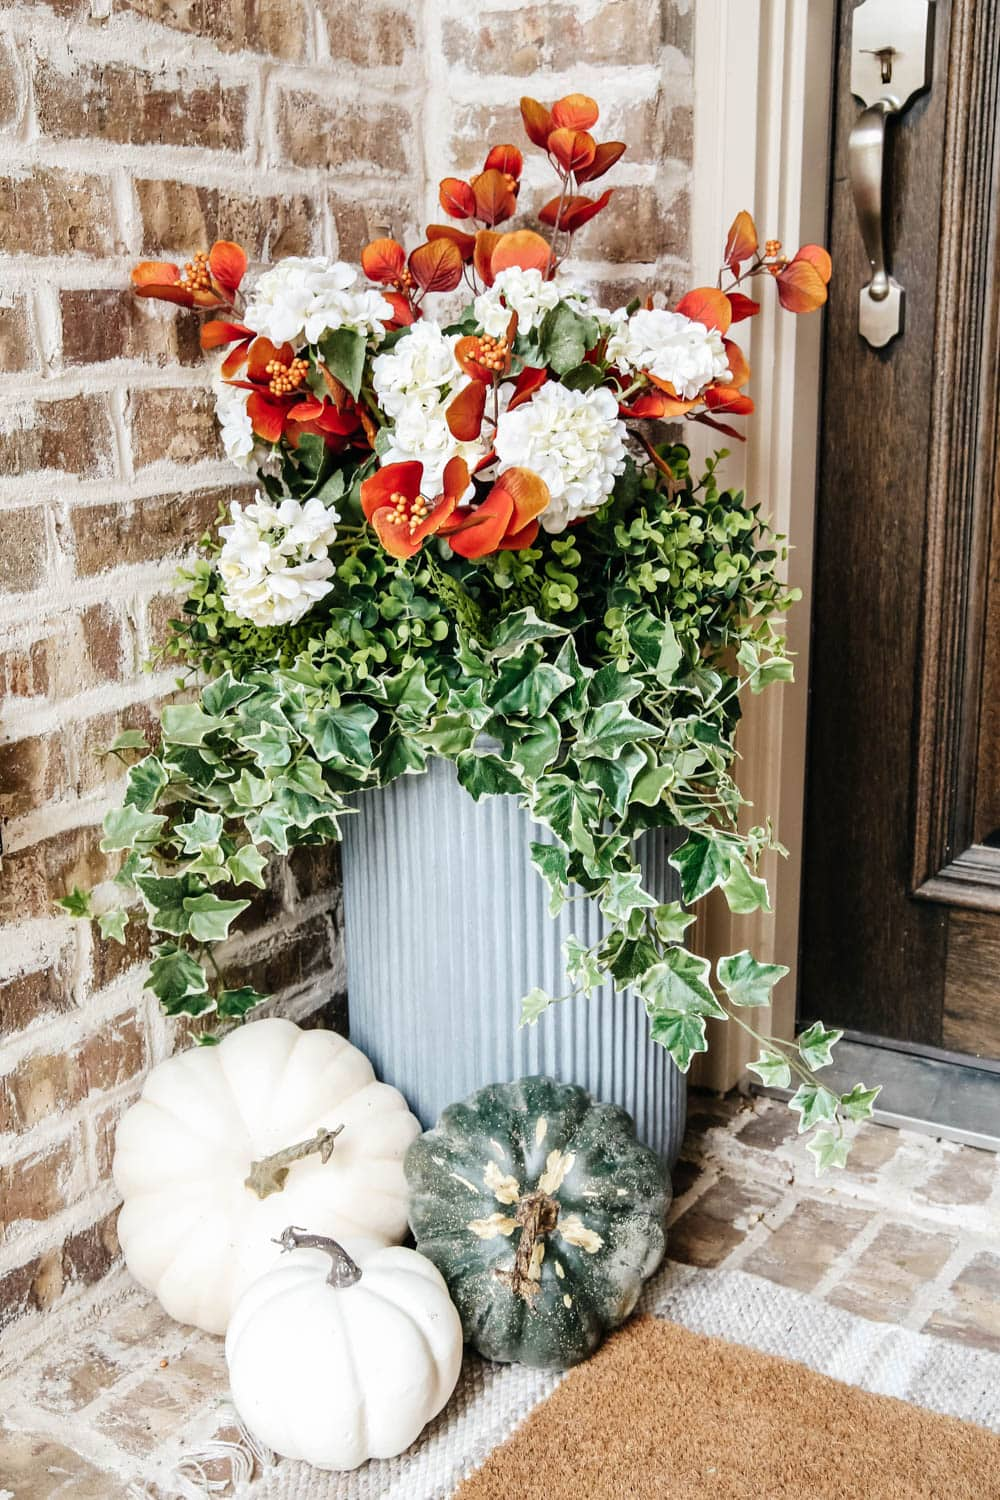 Cluster pumpkins on your porch. #ABlissfulNest #falldecor #fallporch